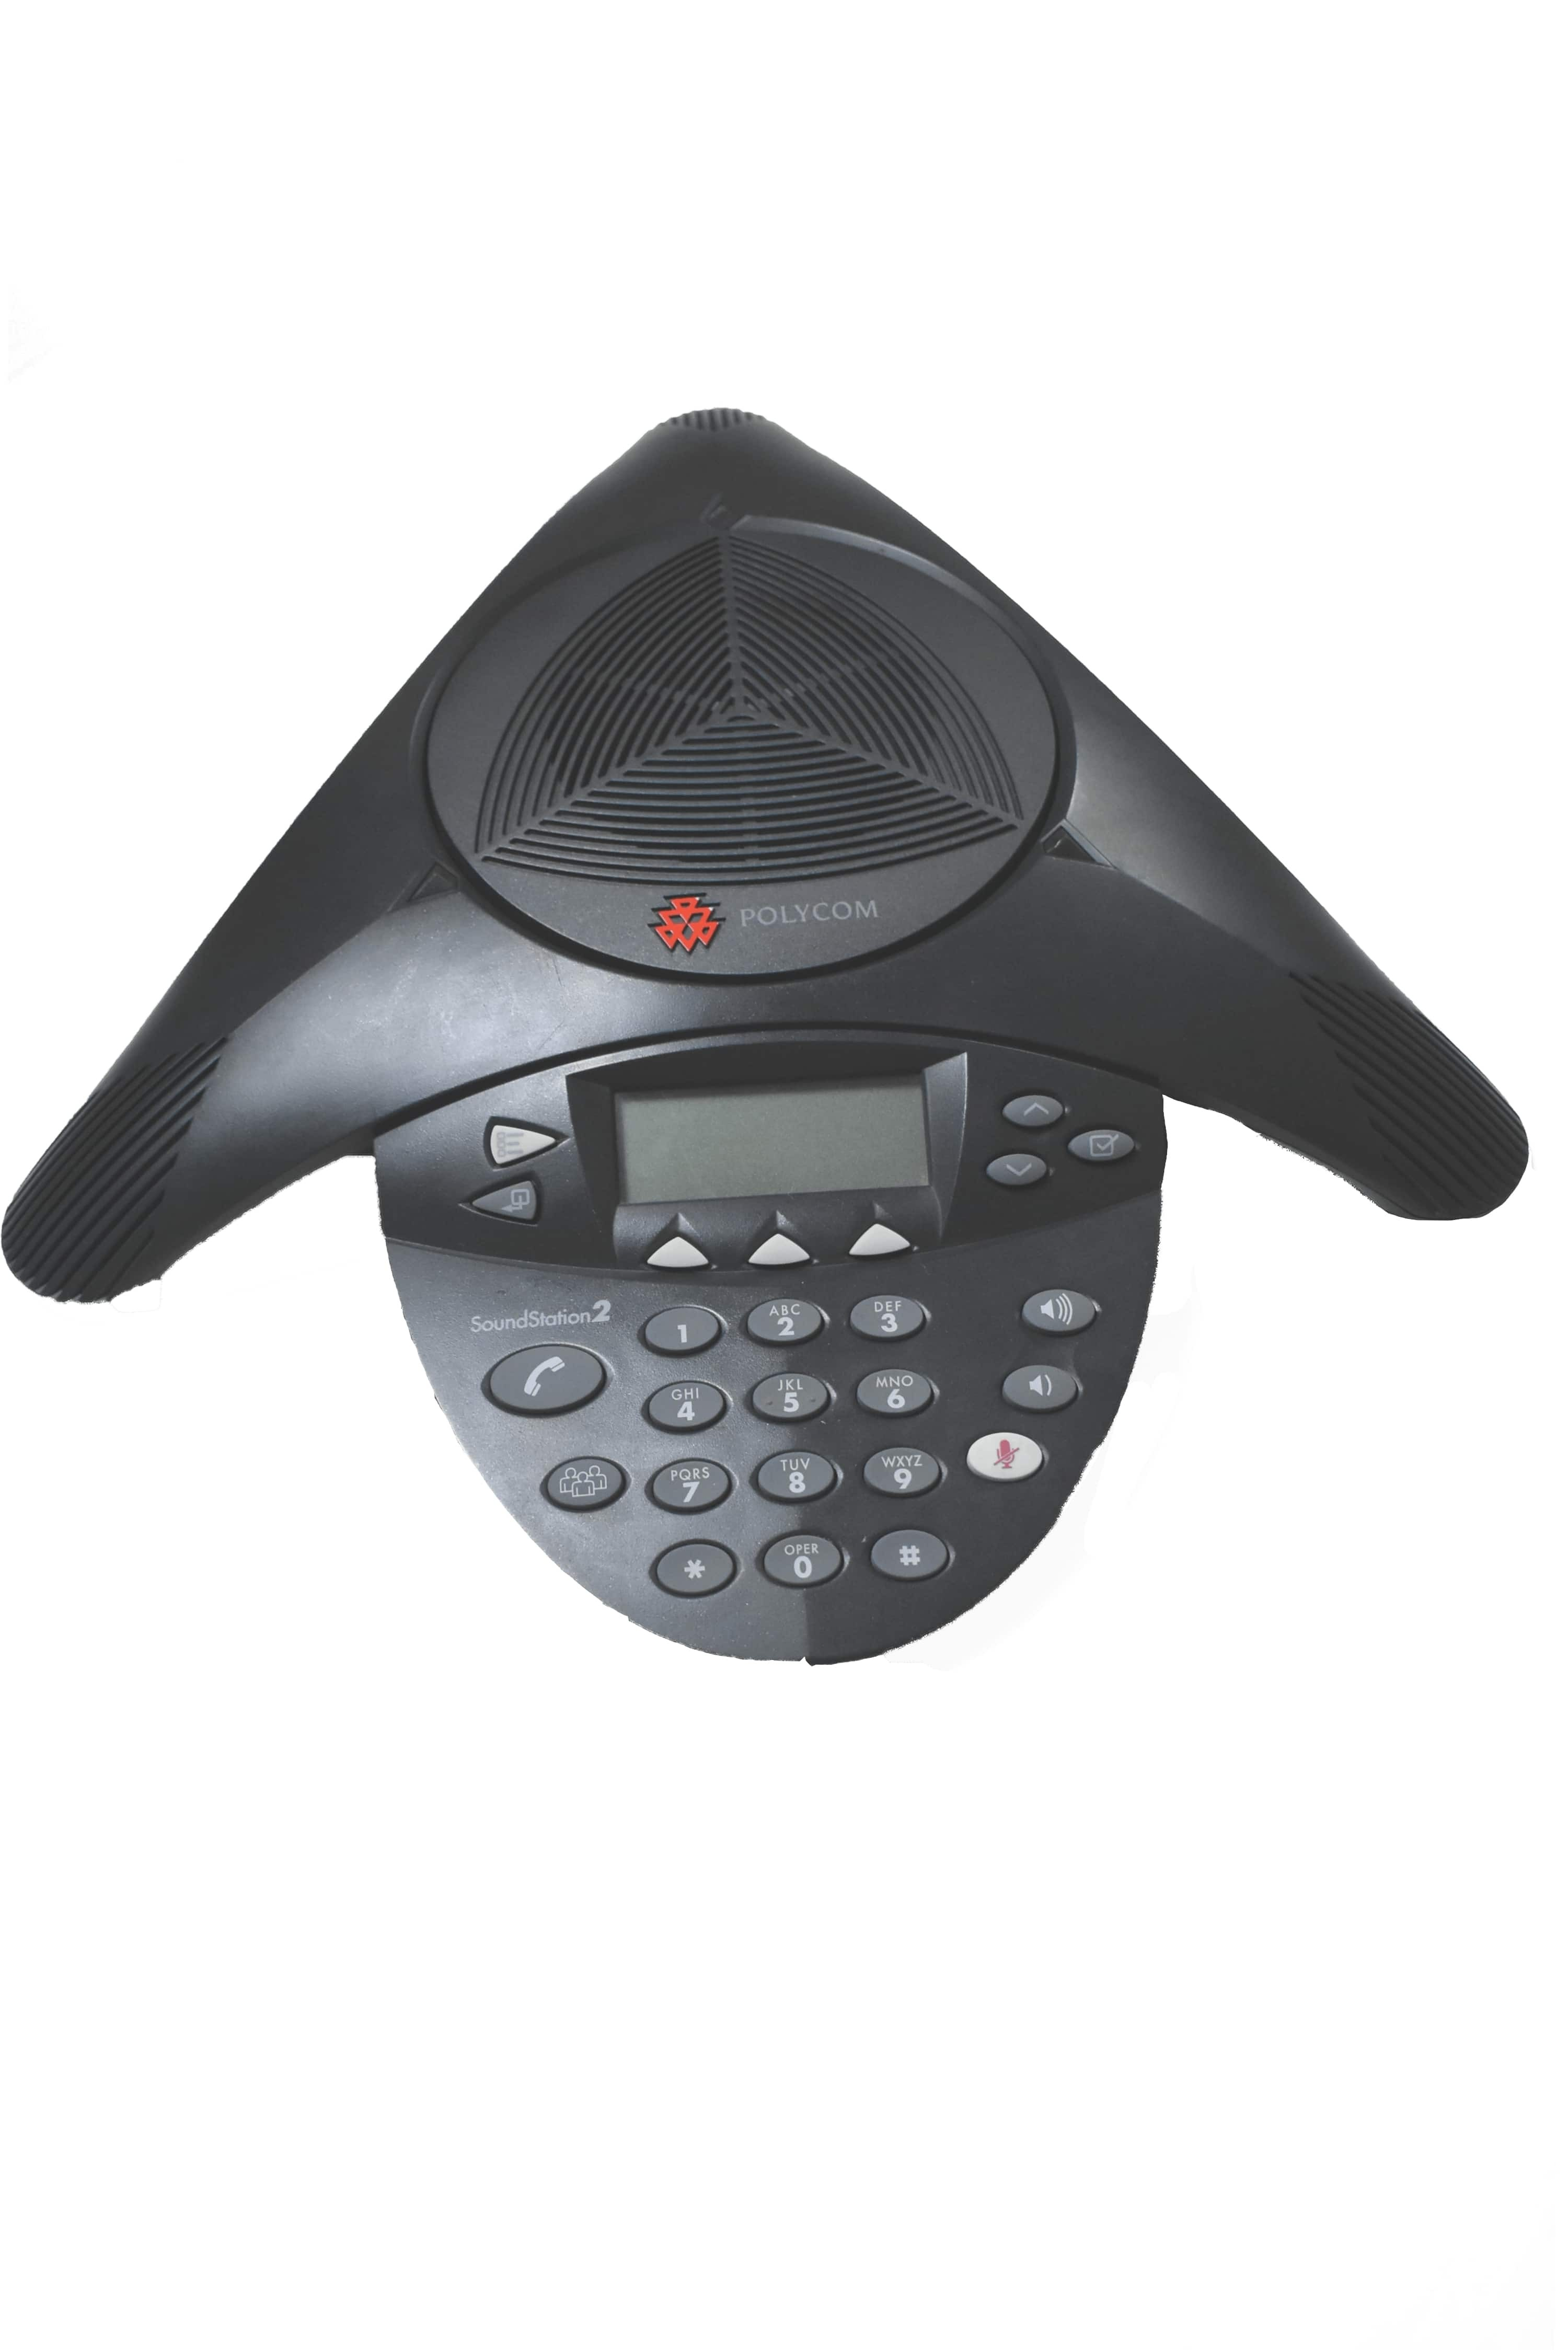 Poly Soundstation 2 Non-Expandable Conference Phone With Display (Refurbished)